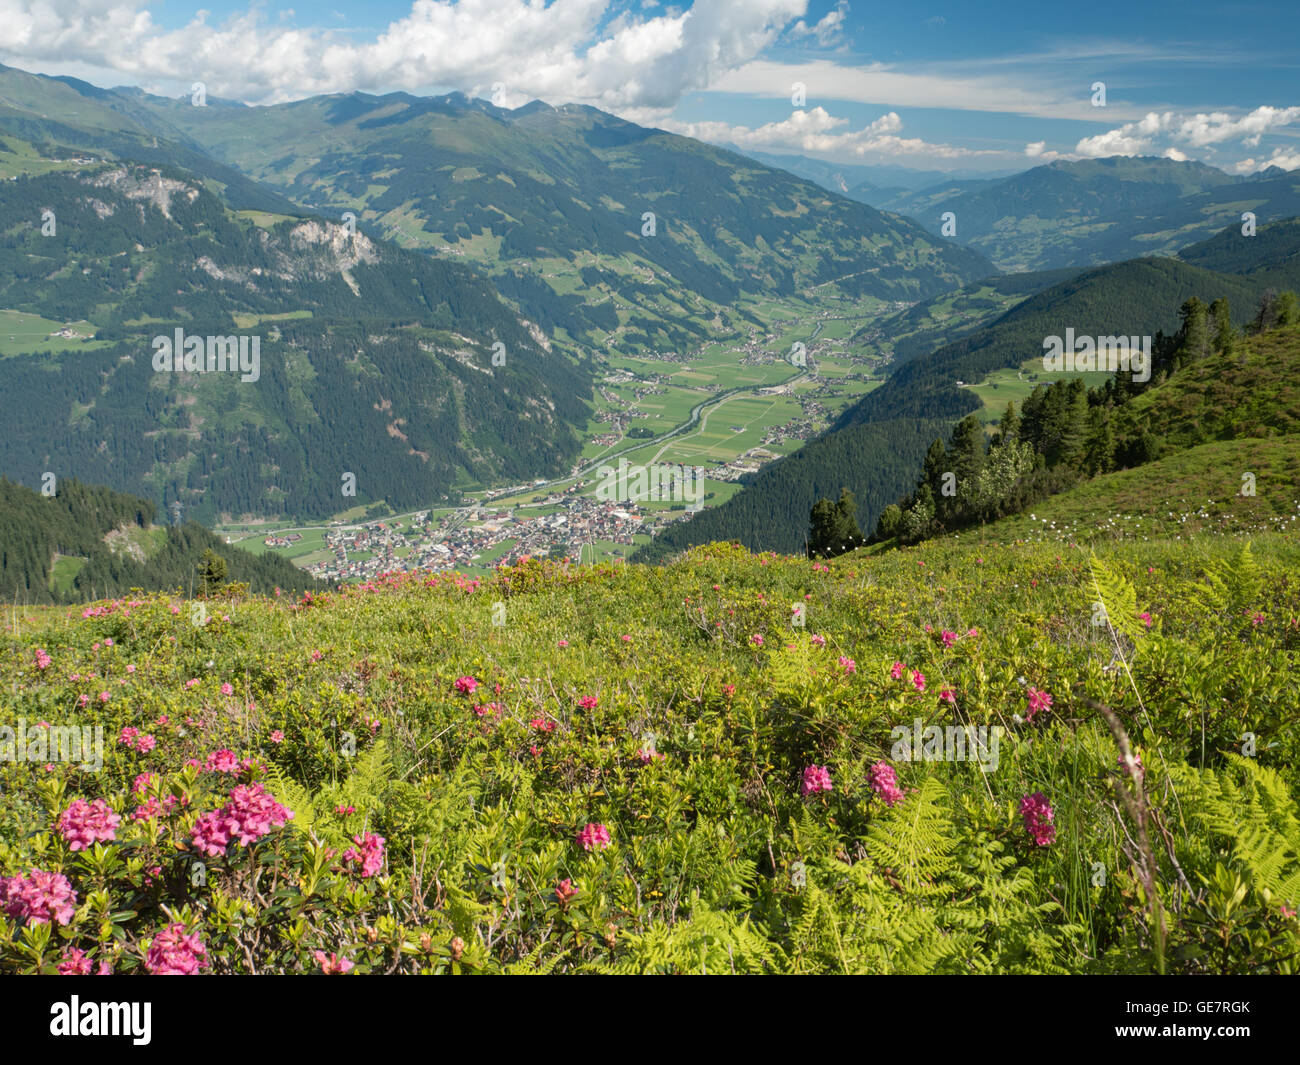 Mayrhofen and the Zillertal valley from Filzenkar - Stock Image